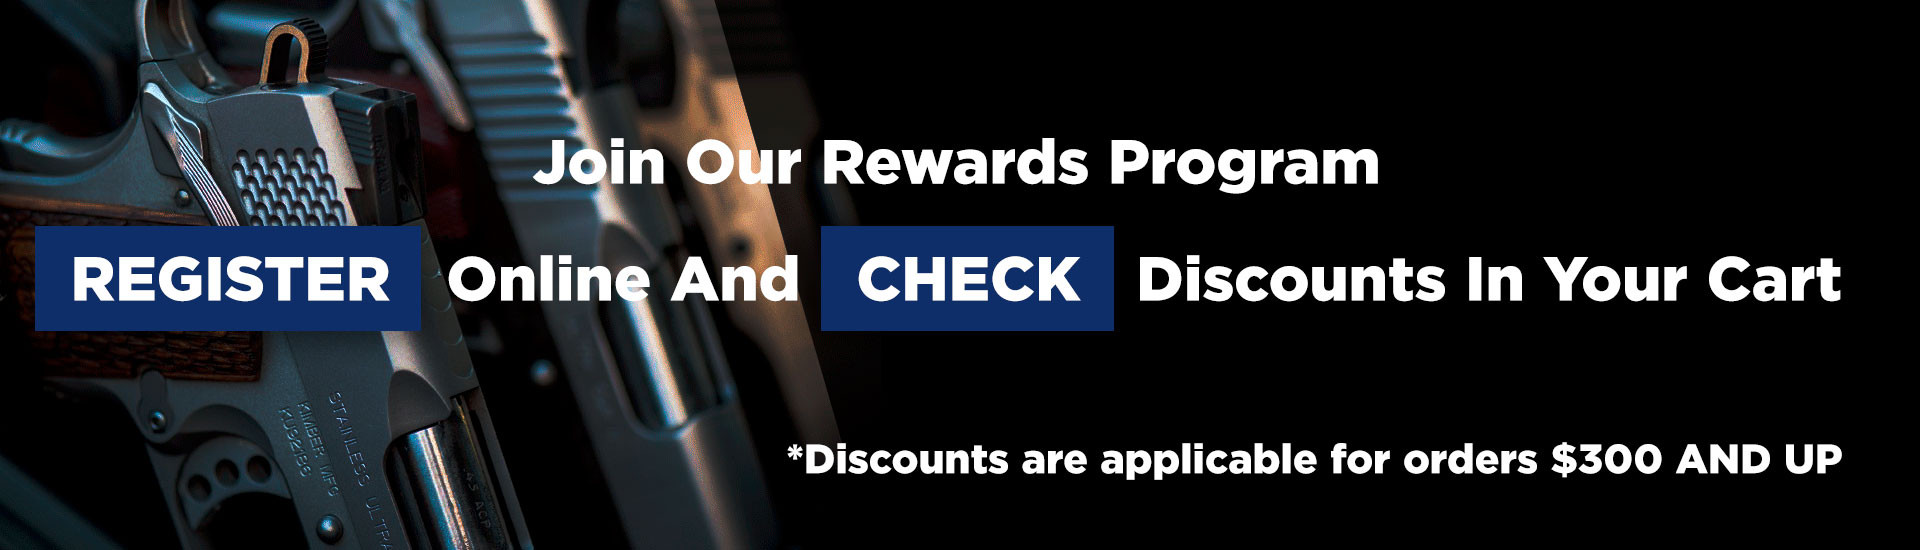 Join Our Rewards Program